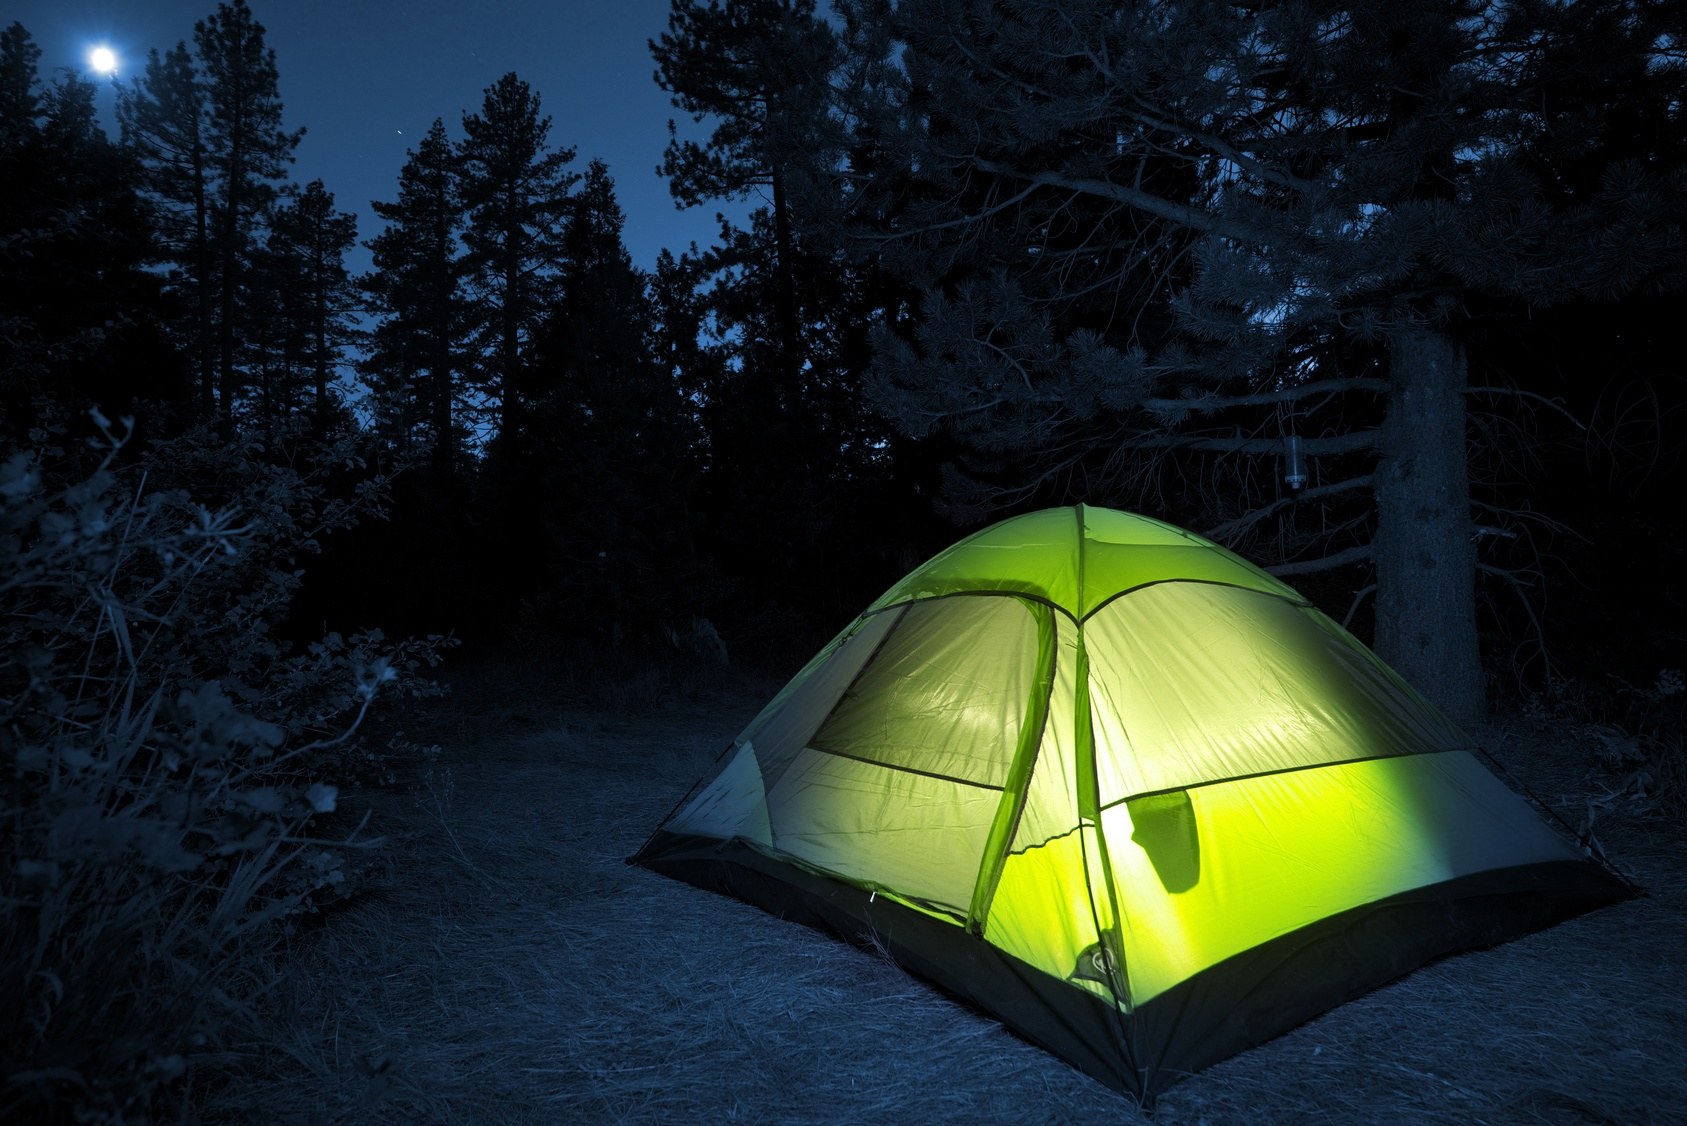 Keeping Your Tent Dry - The Things You Need To Know